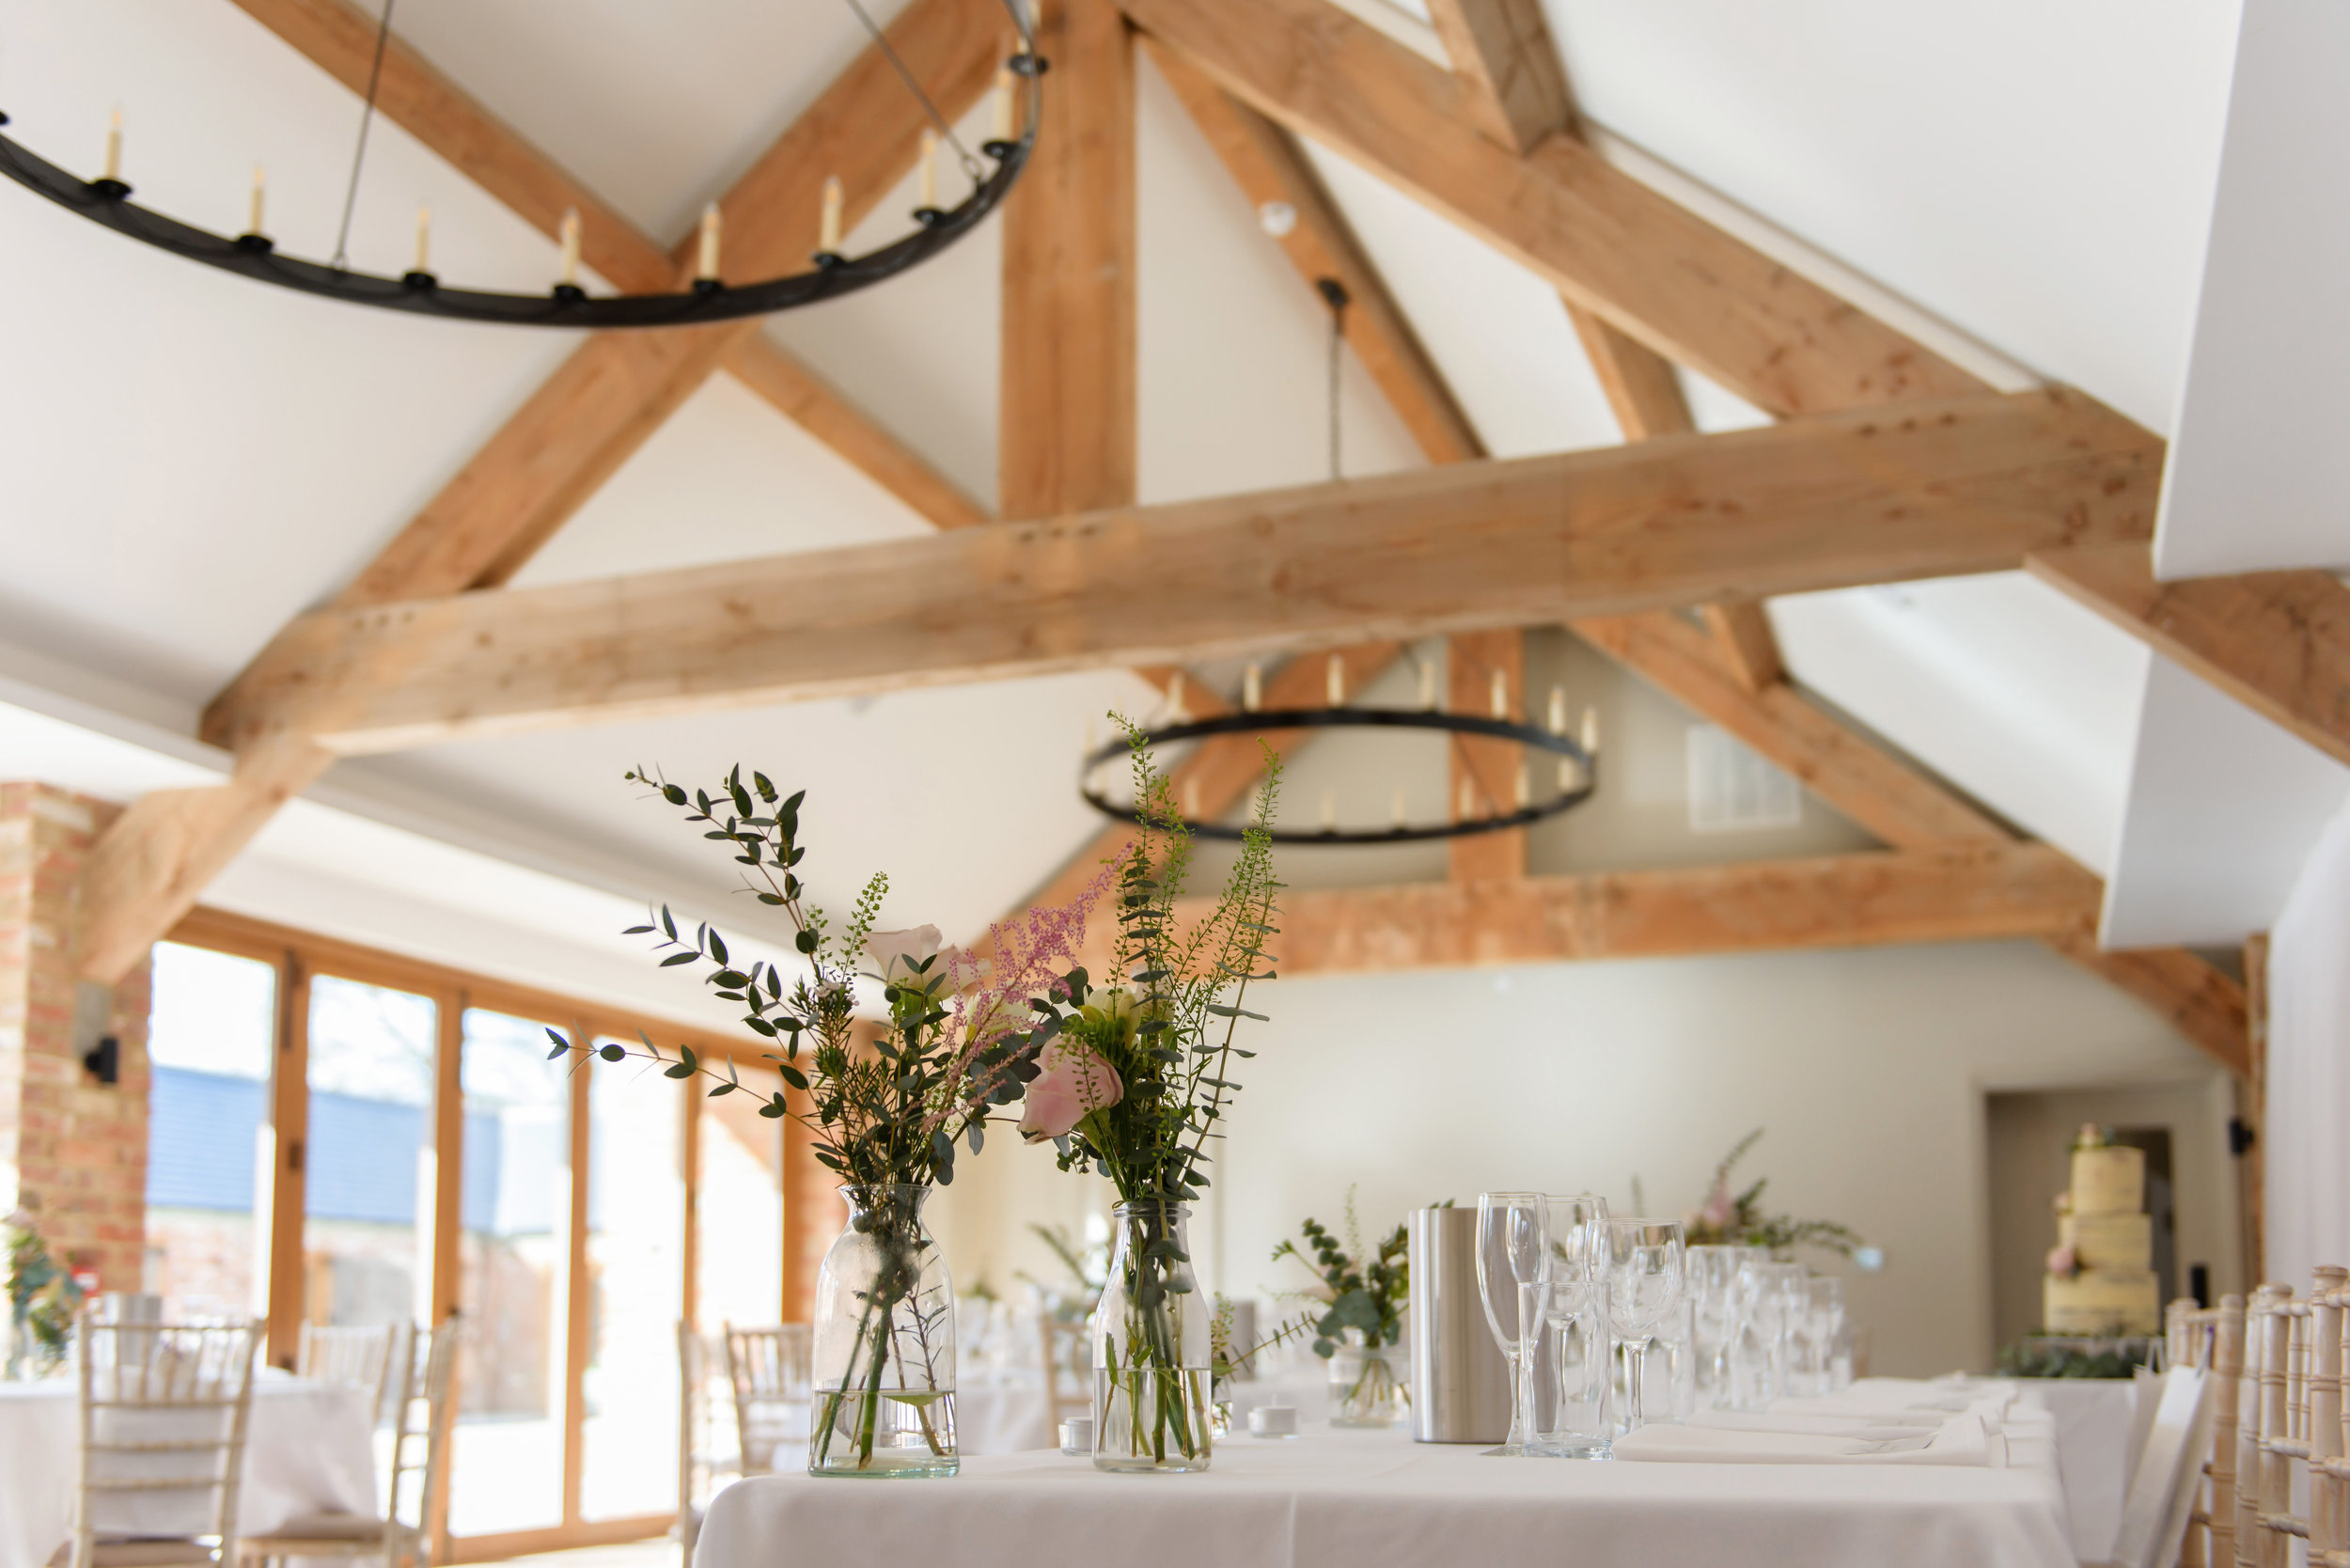 - We design and create the table settings to suit the wedding's requirements. Our flower displays are provided by Gabriella Rankin.